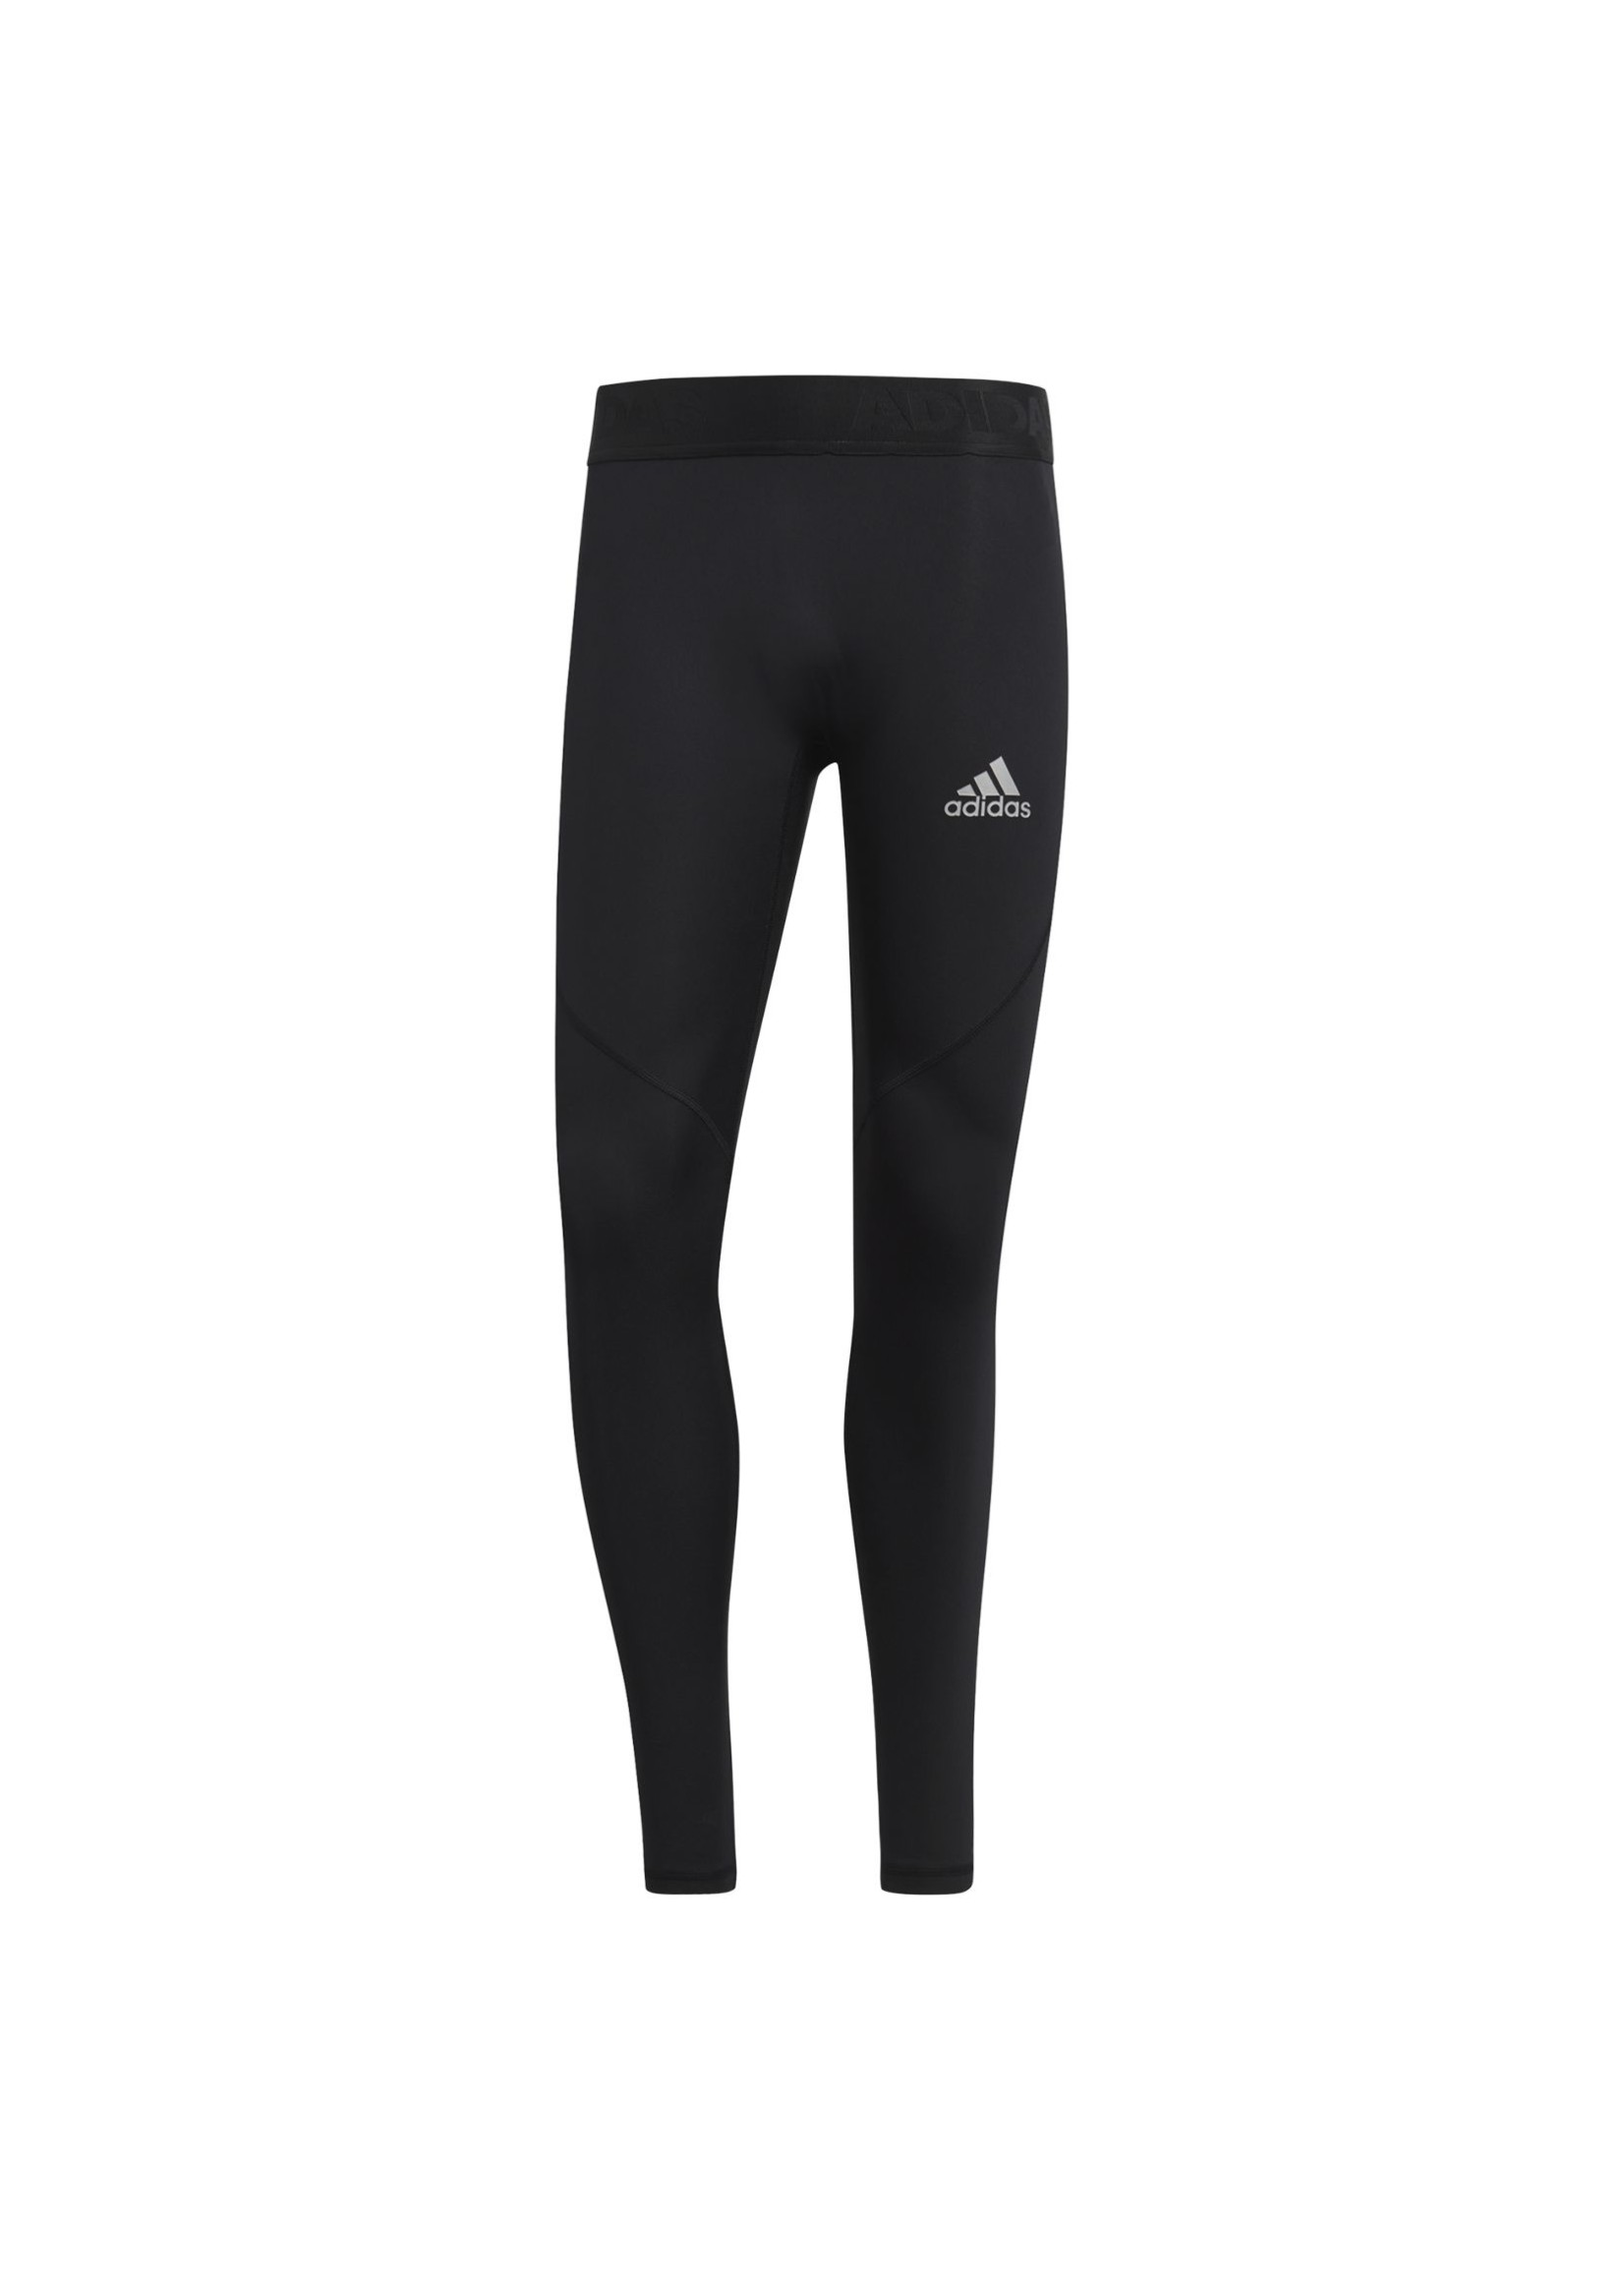 Adidas Compression Black Pant Adult